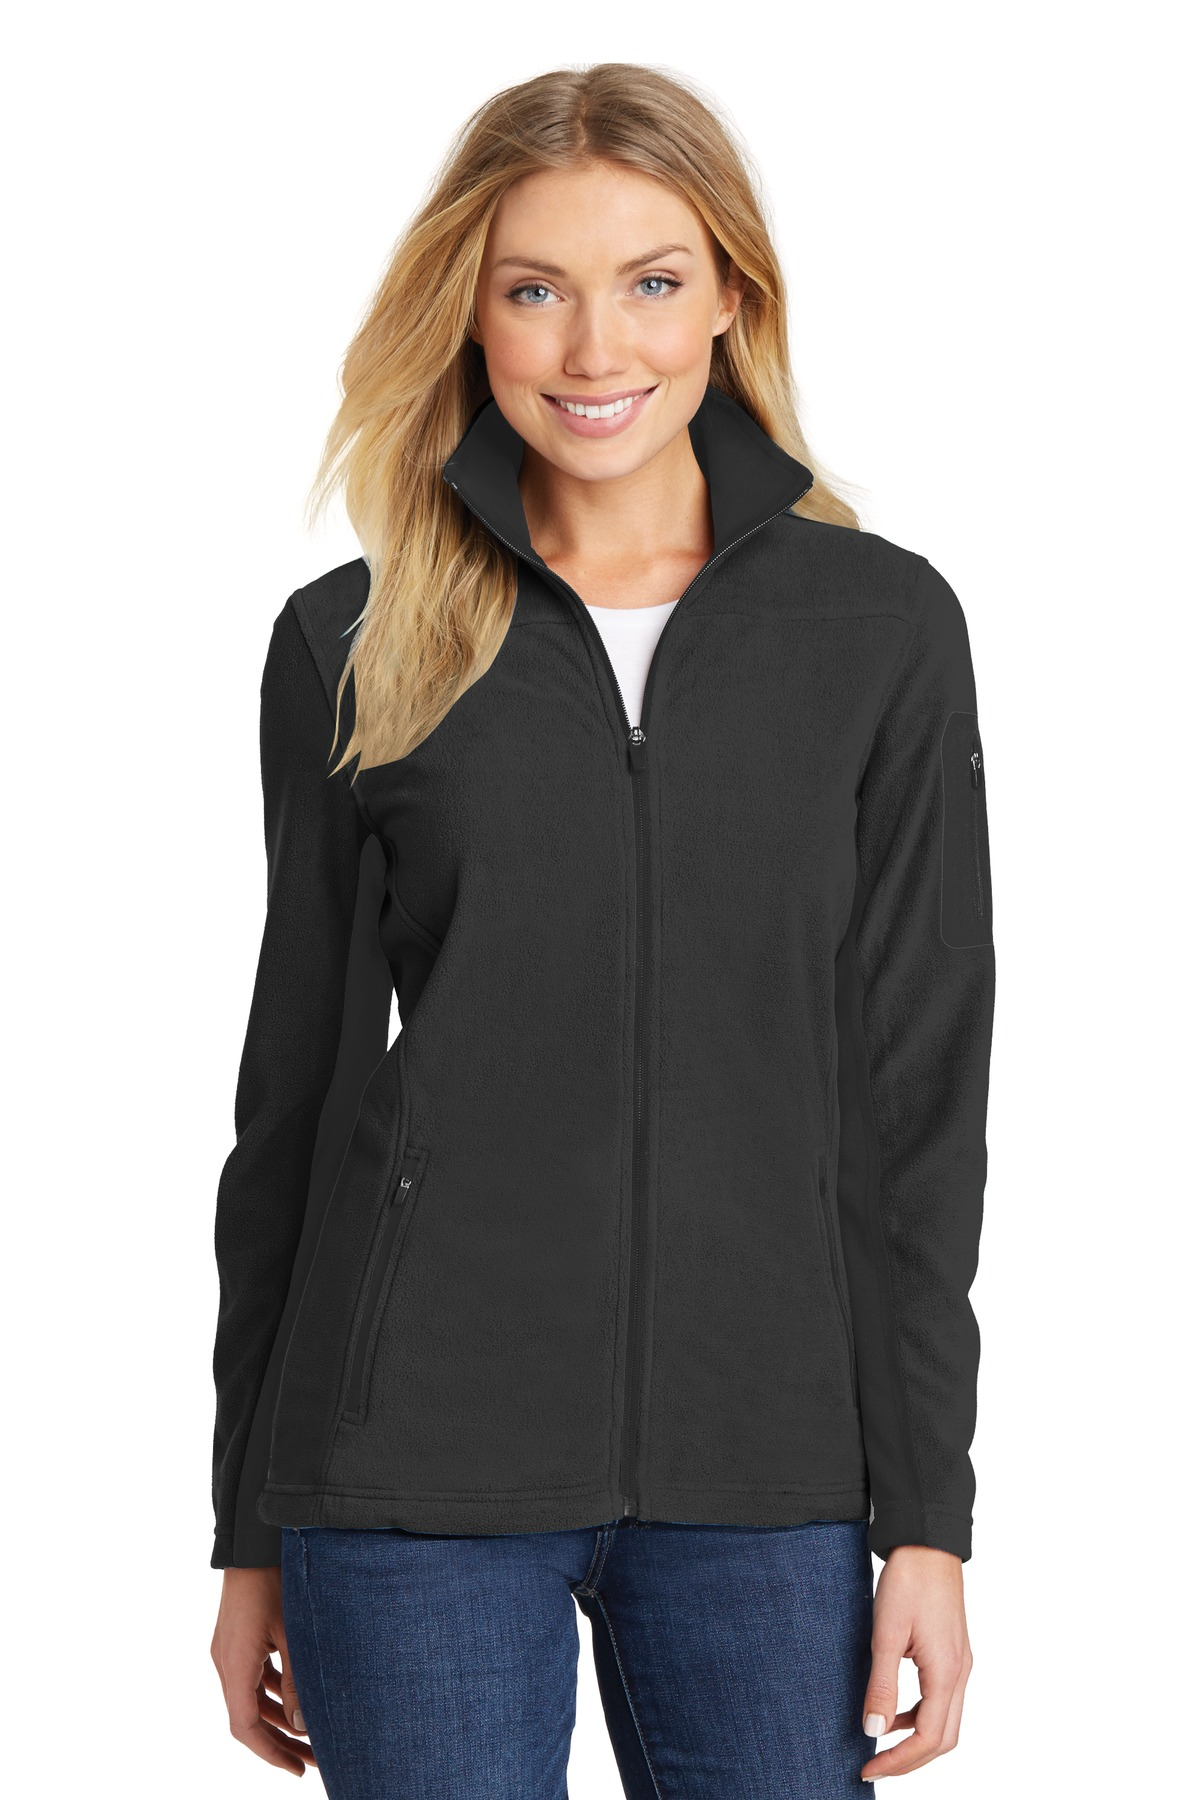 Port Authority  L233 - Ladies Summit Fleece Full-Zip Jacket